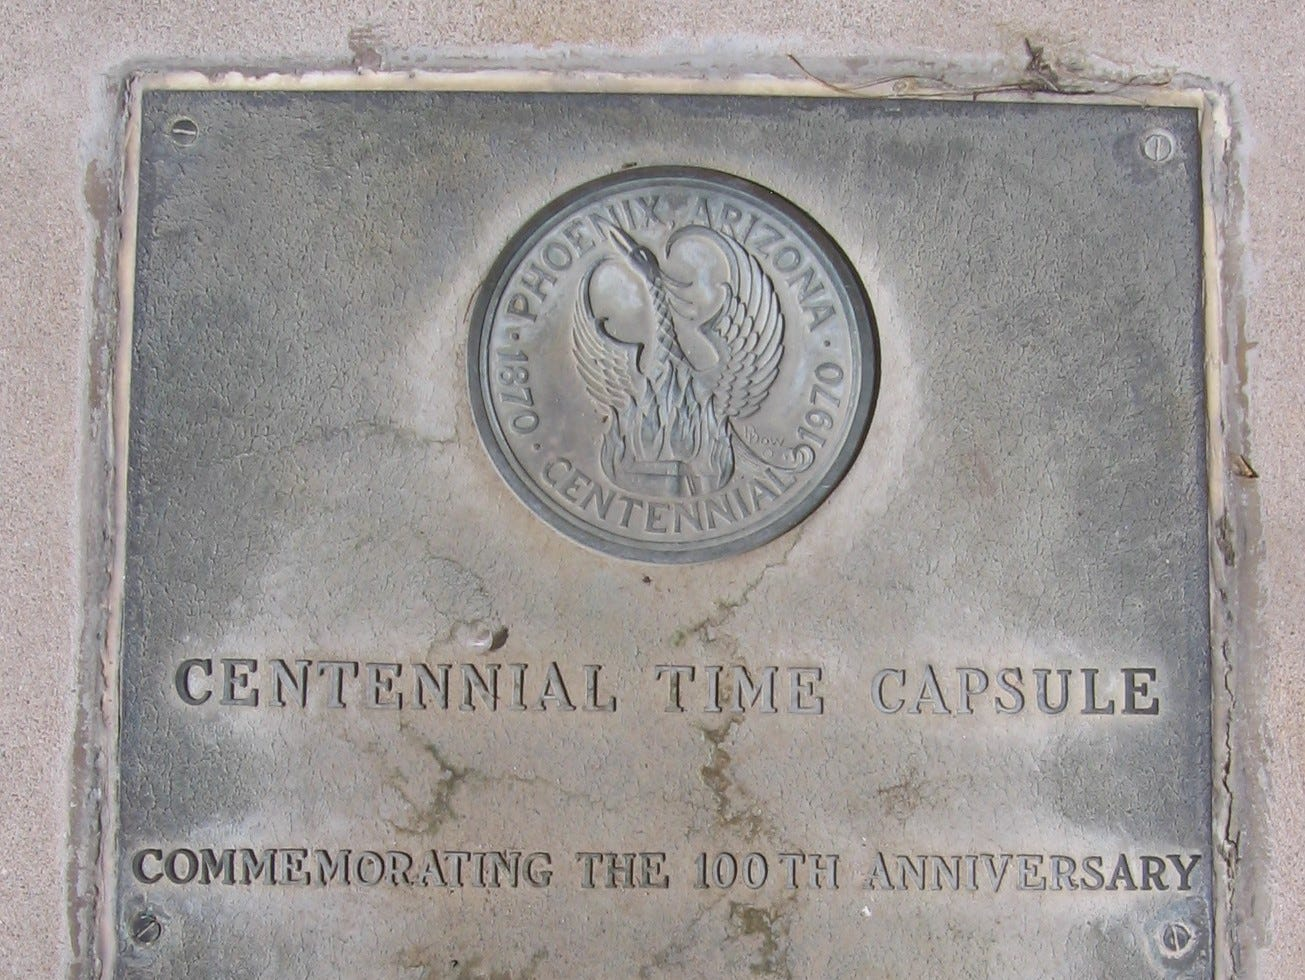 Phoenix Time Capsule south of the Calvin Goode Building